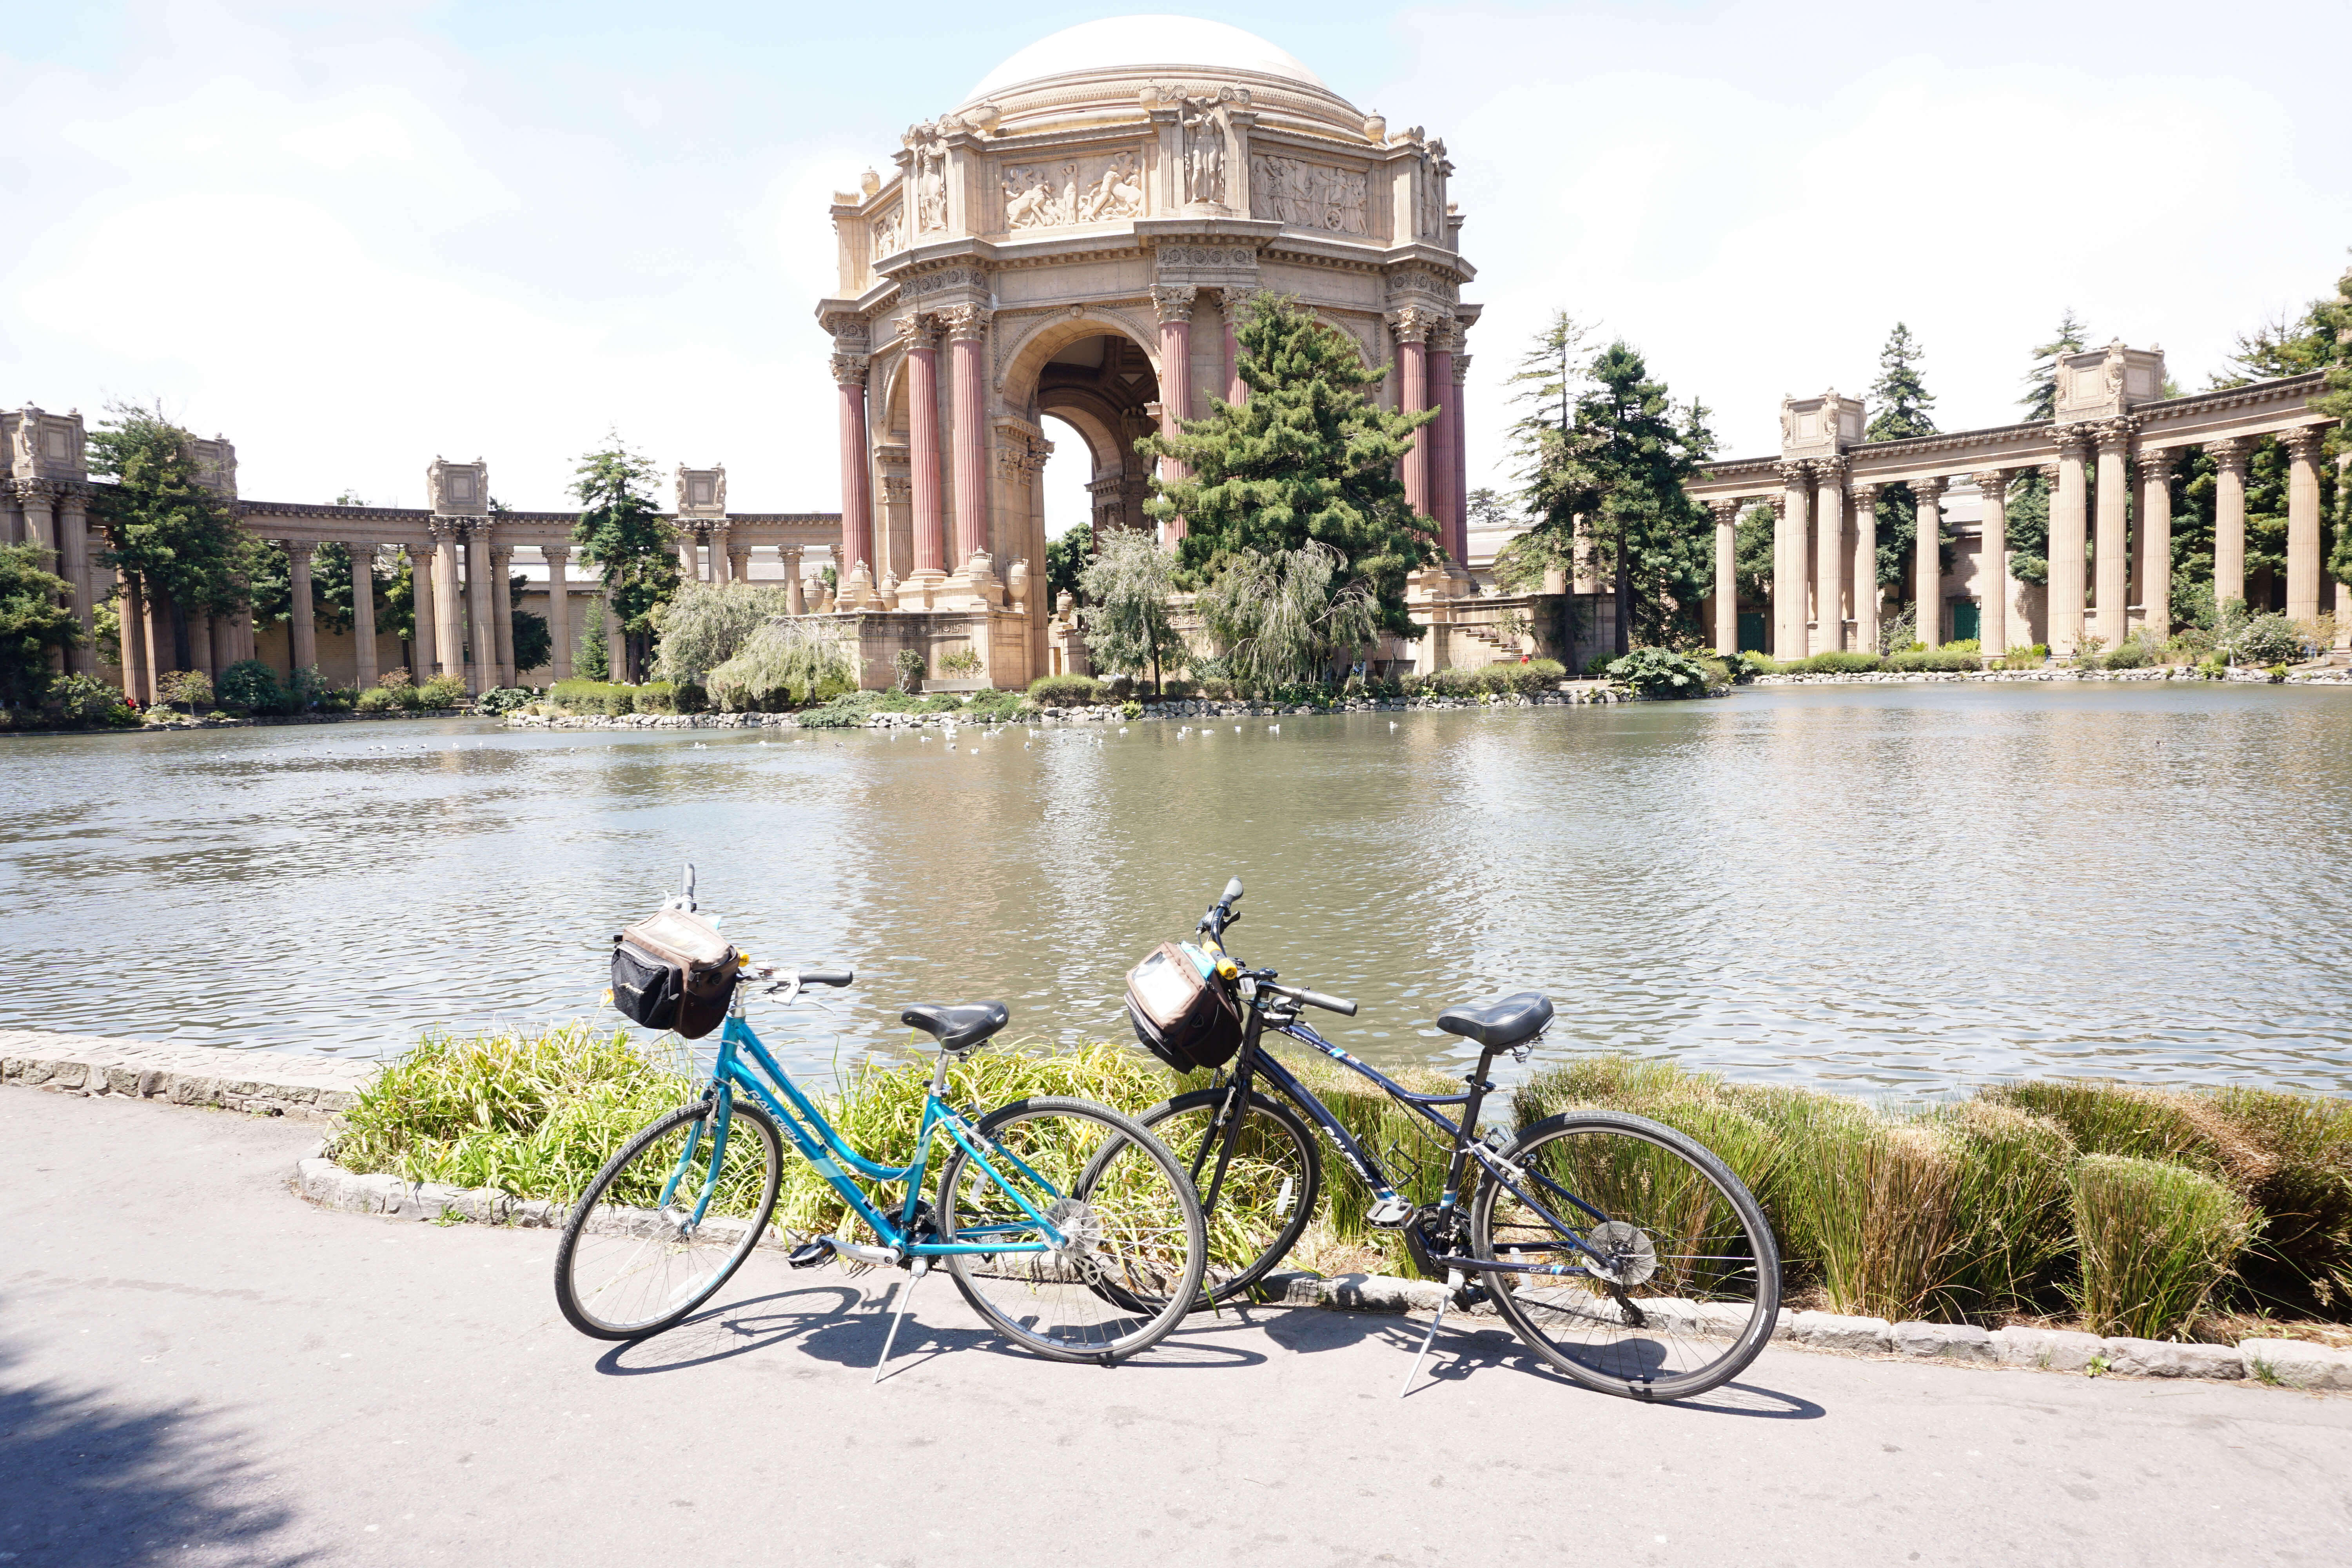 You can rent bikes in San Francisco and go by the Palace of the Fine Arts! What a great pit stop to put on your list!